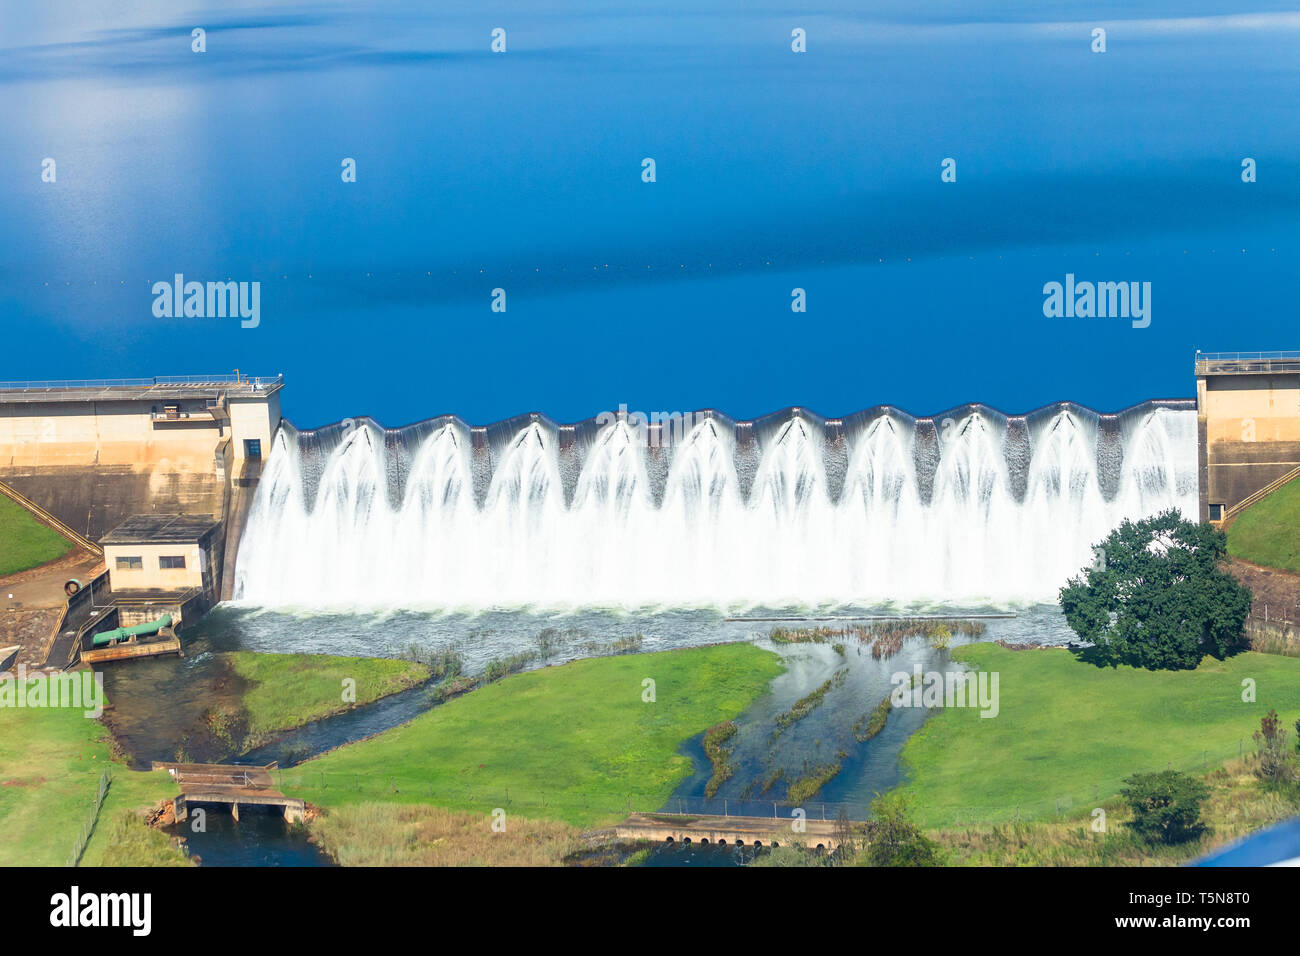 Full dam waters overflowing wall structure closeup flying air photo overlooking natures power. - Stock Image